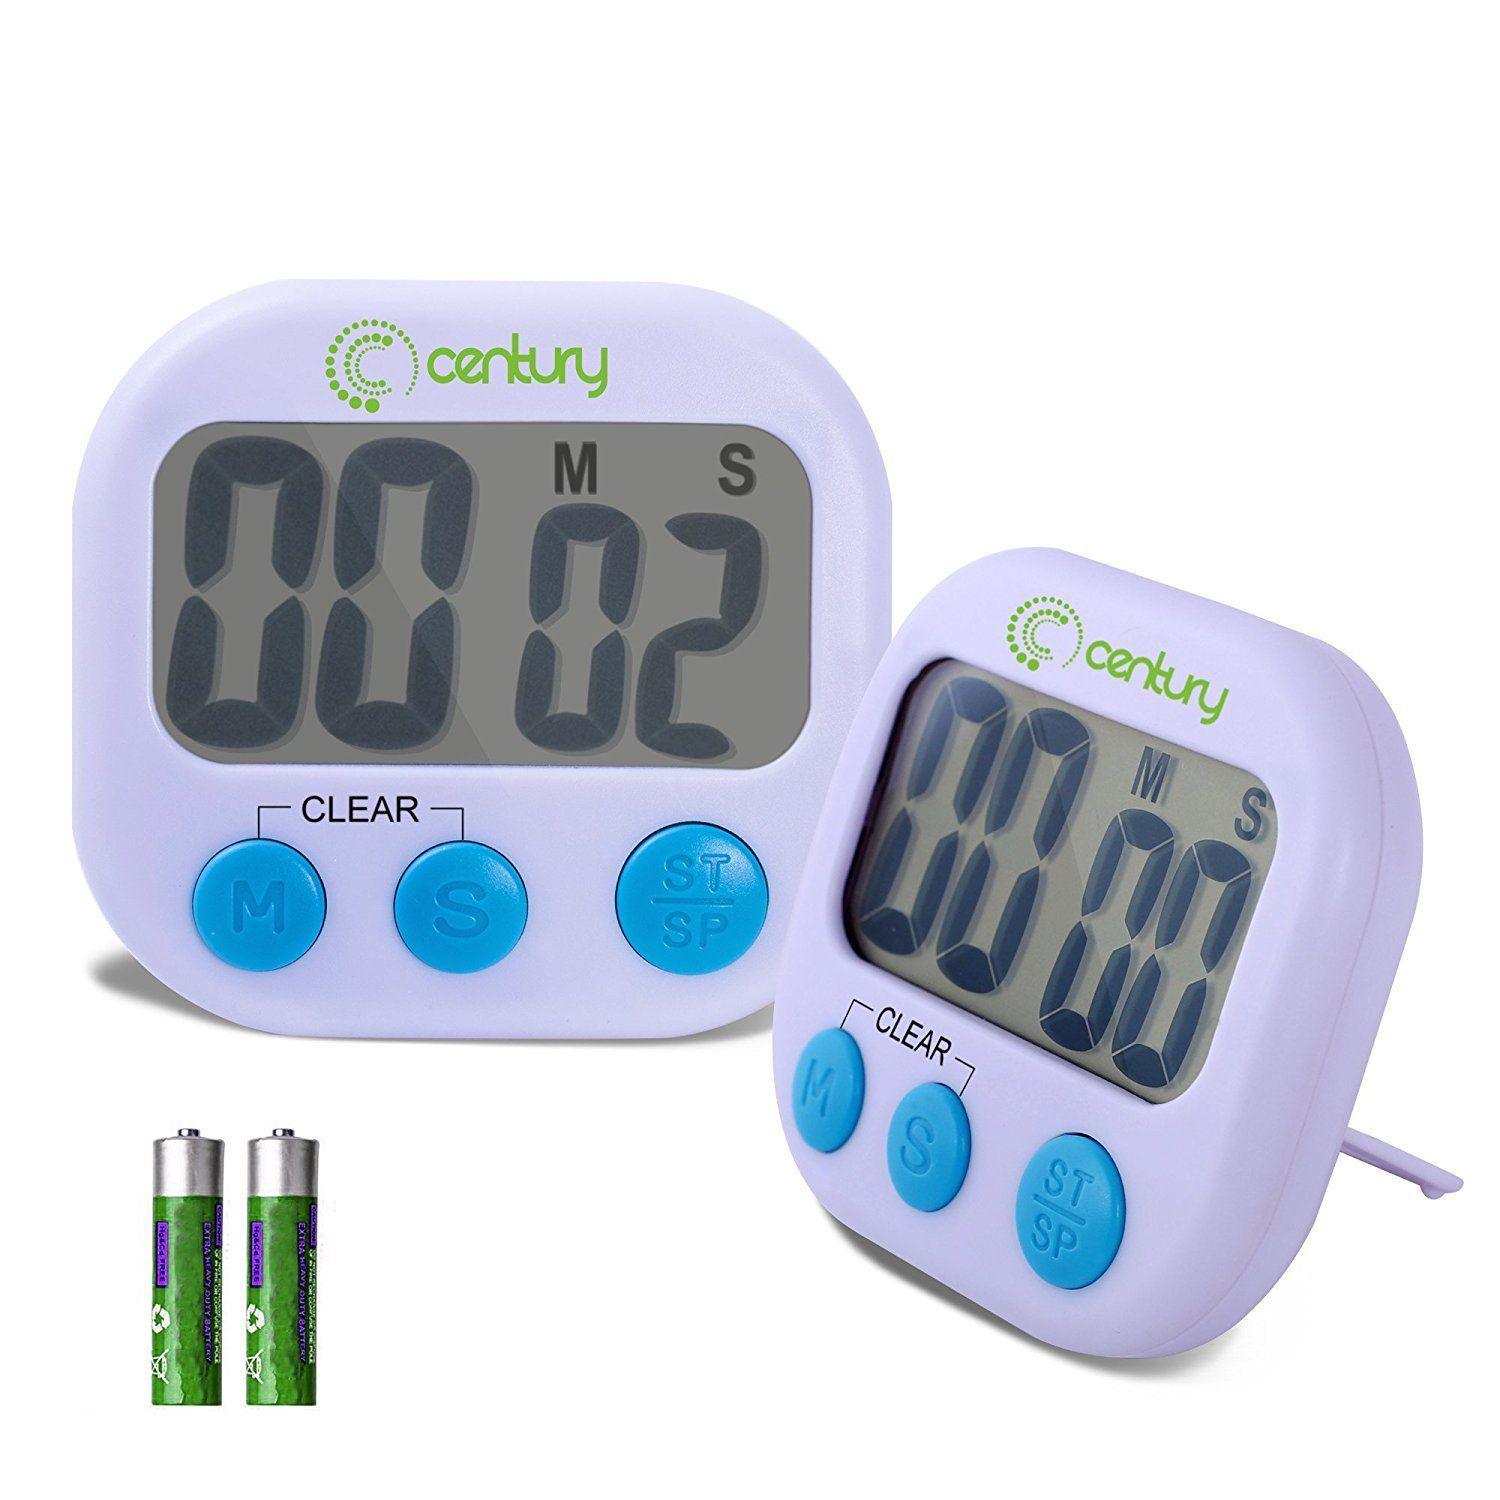 Century Digital Kitchen Timer, Big Screen, Loud Alarm, Magnetic Backing, 2 pack